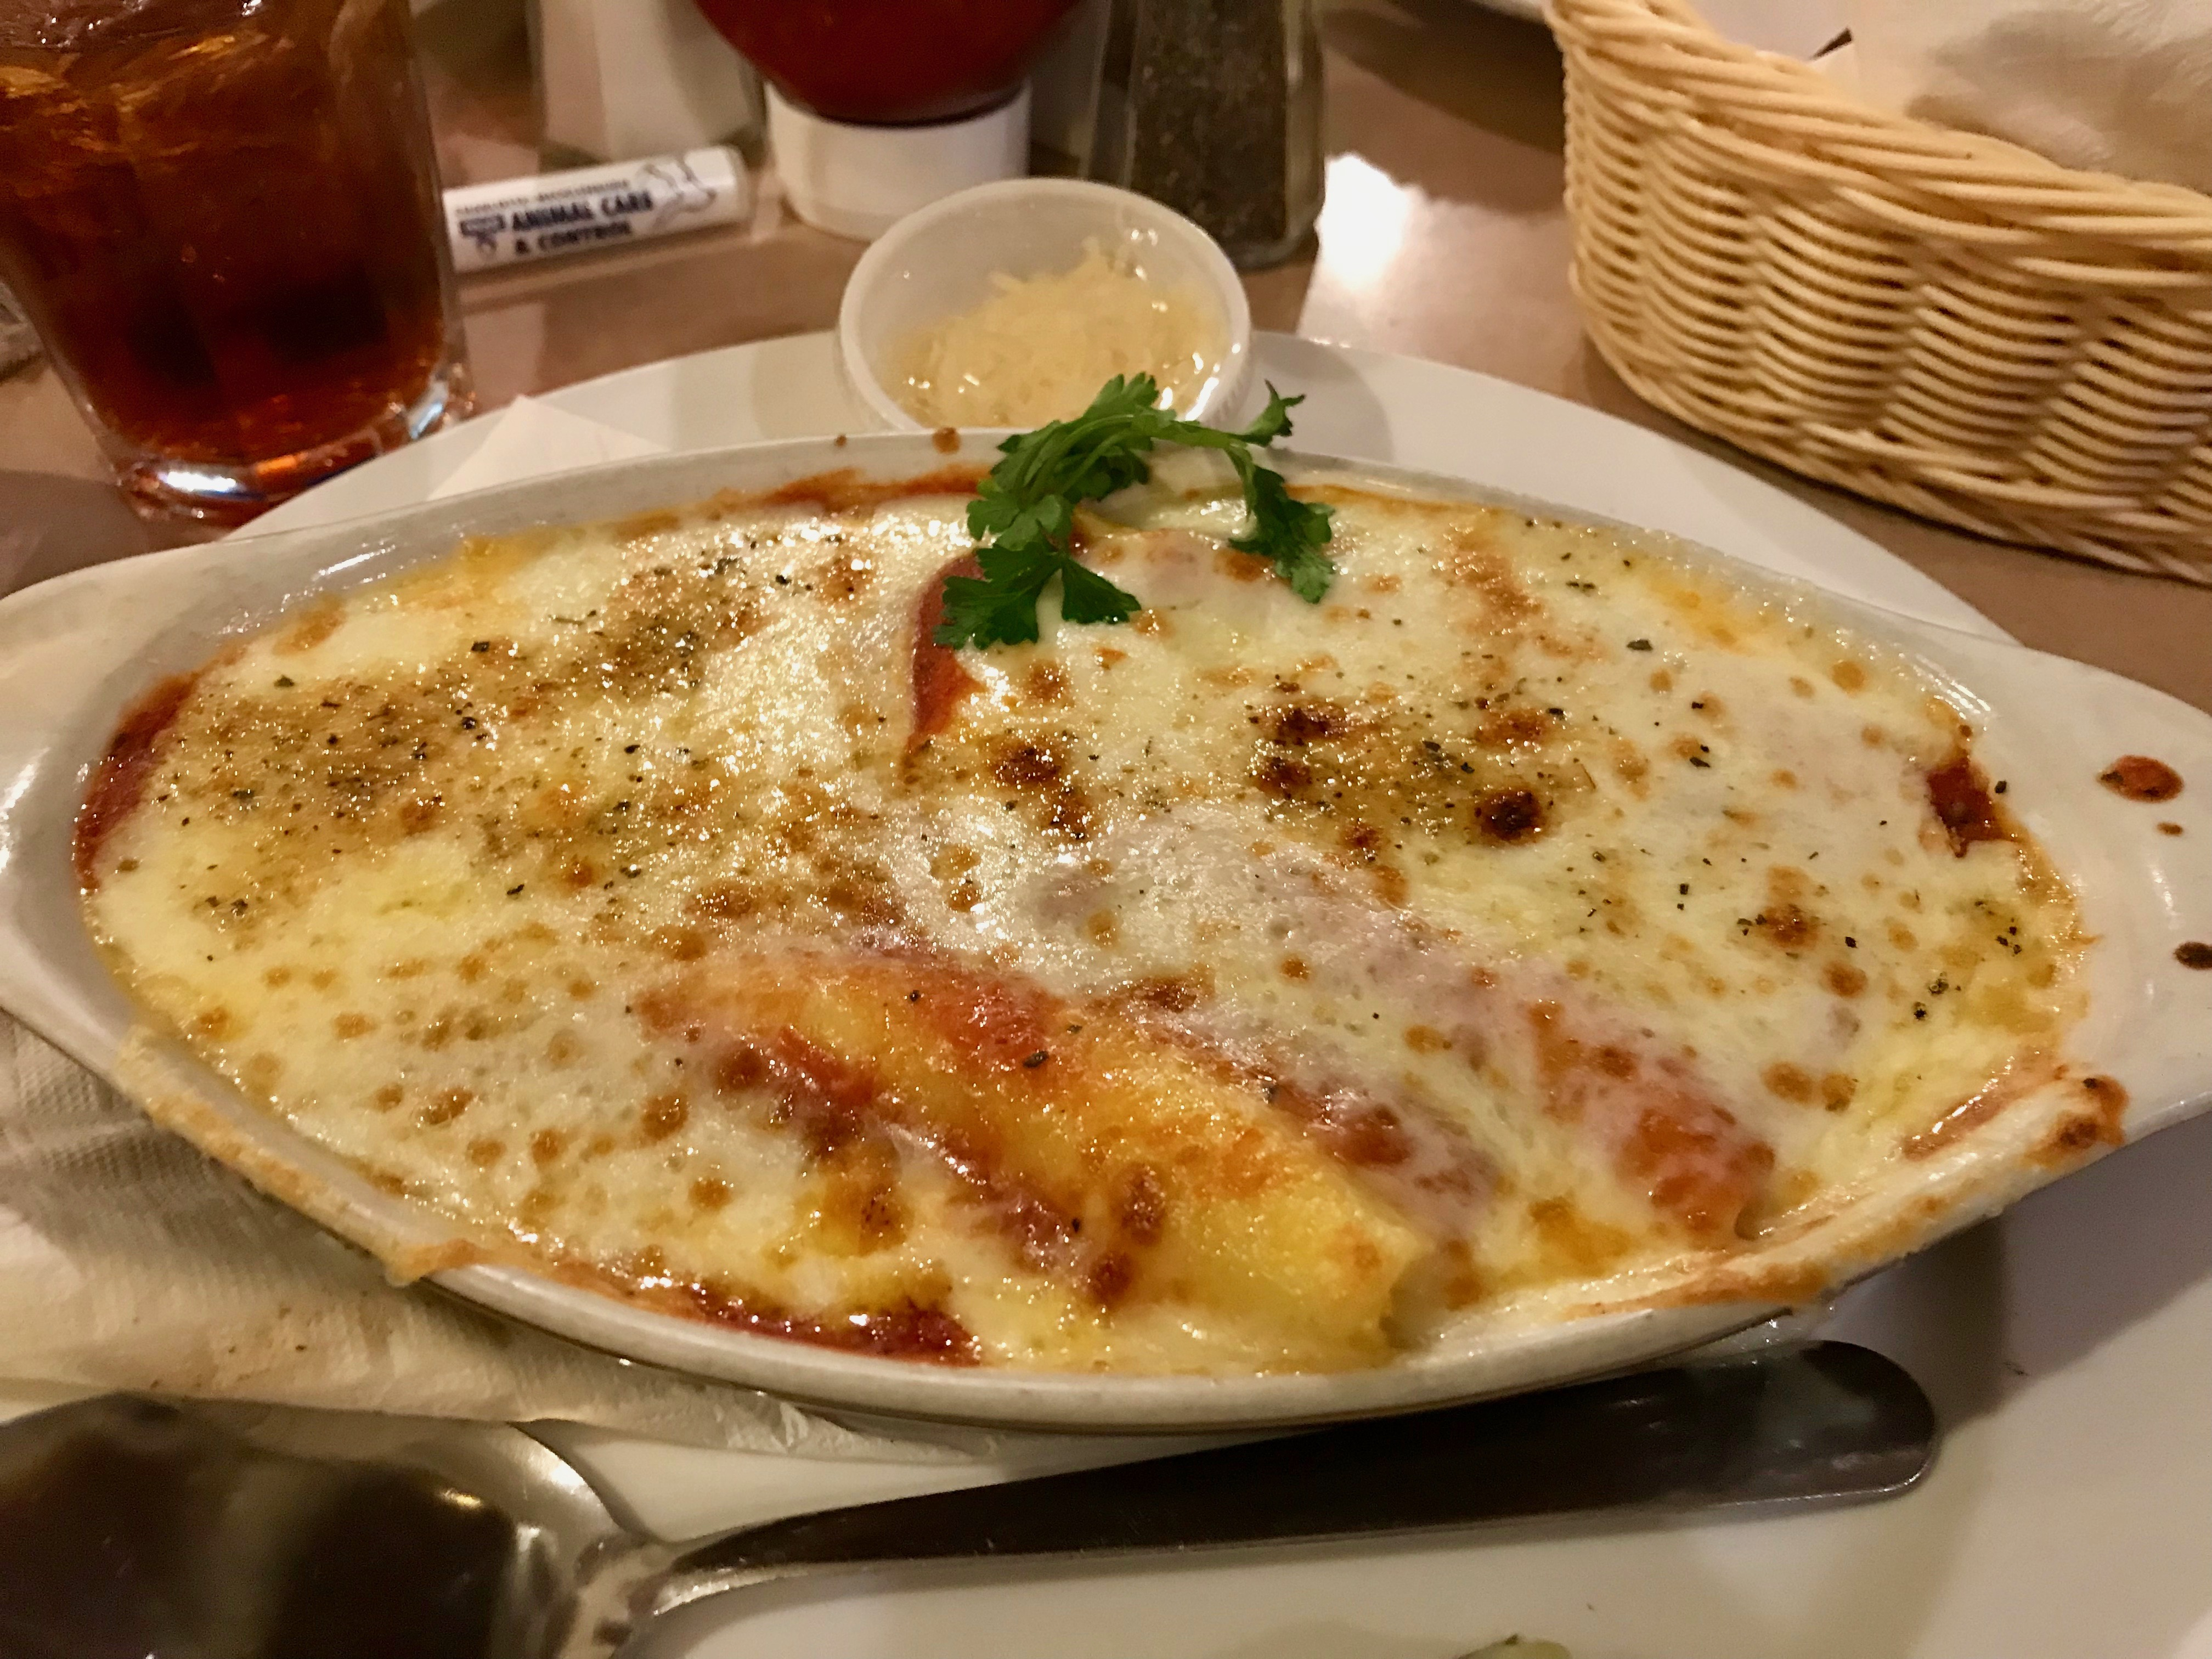 Manicotti from Landmark Diner